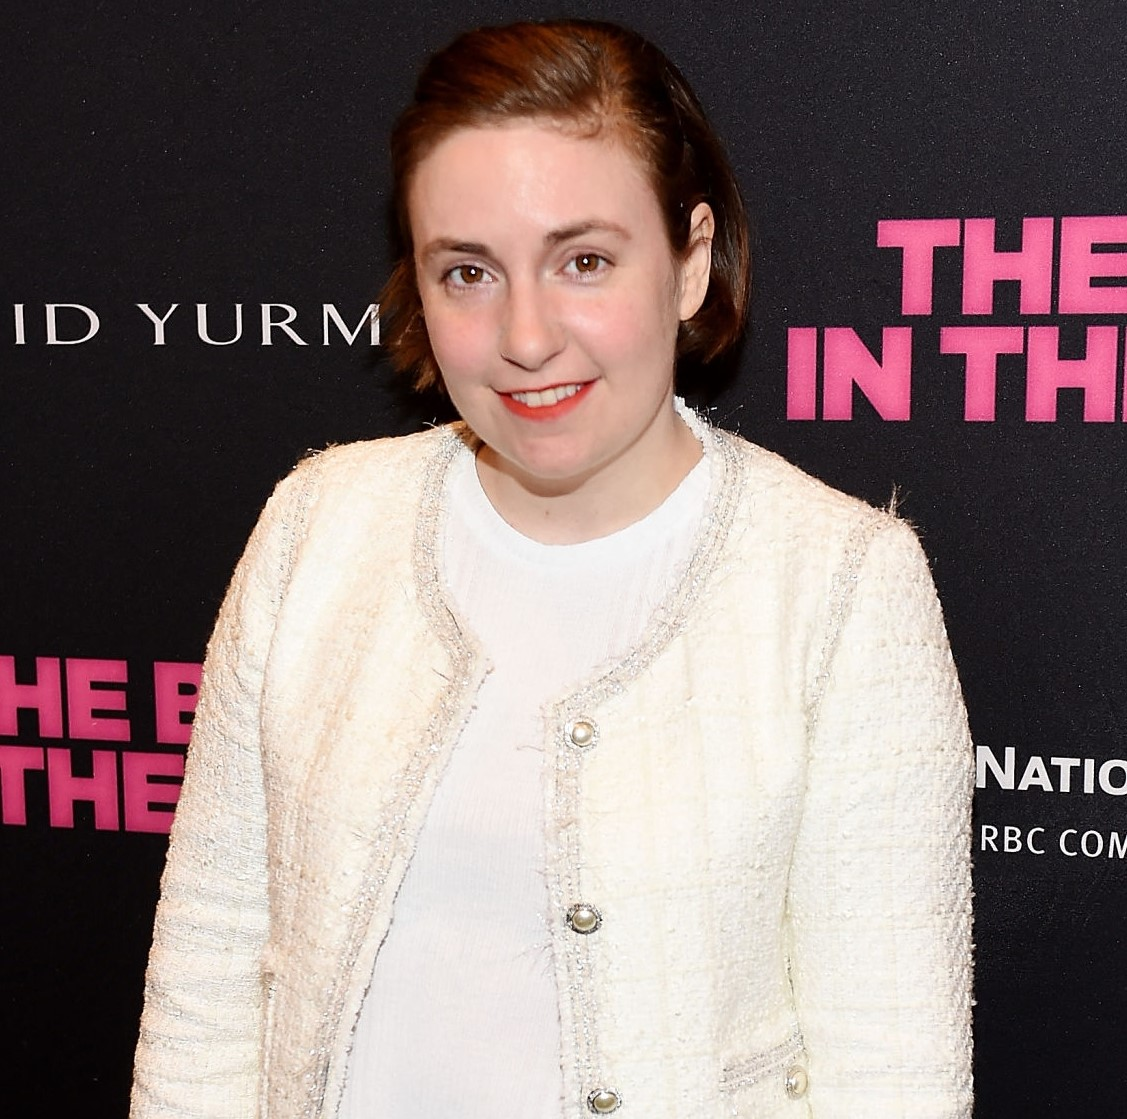 Lena Dunham confesses on social media of dealing with Ehlers-Danlos Disorder